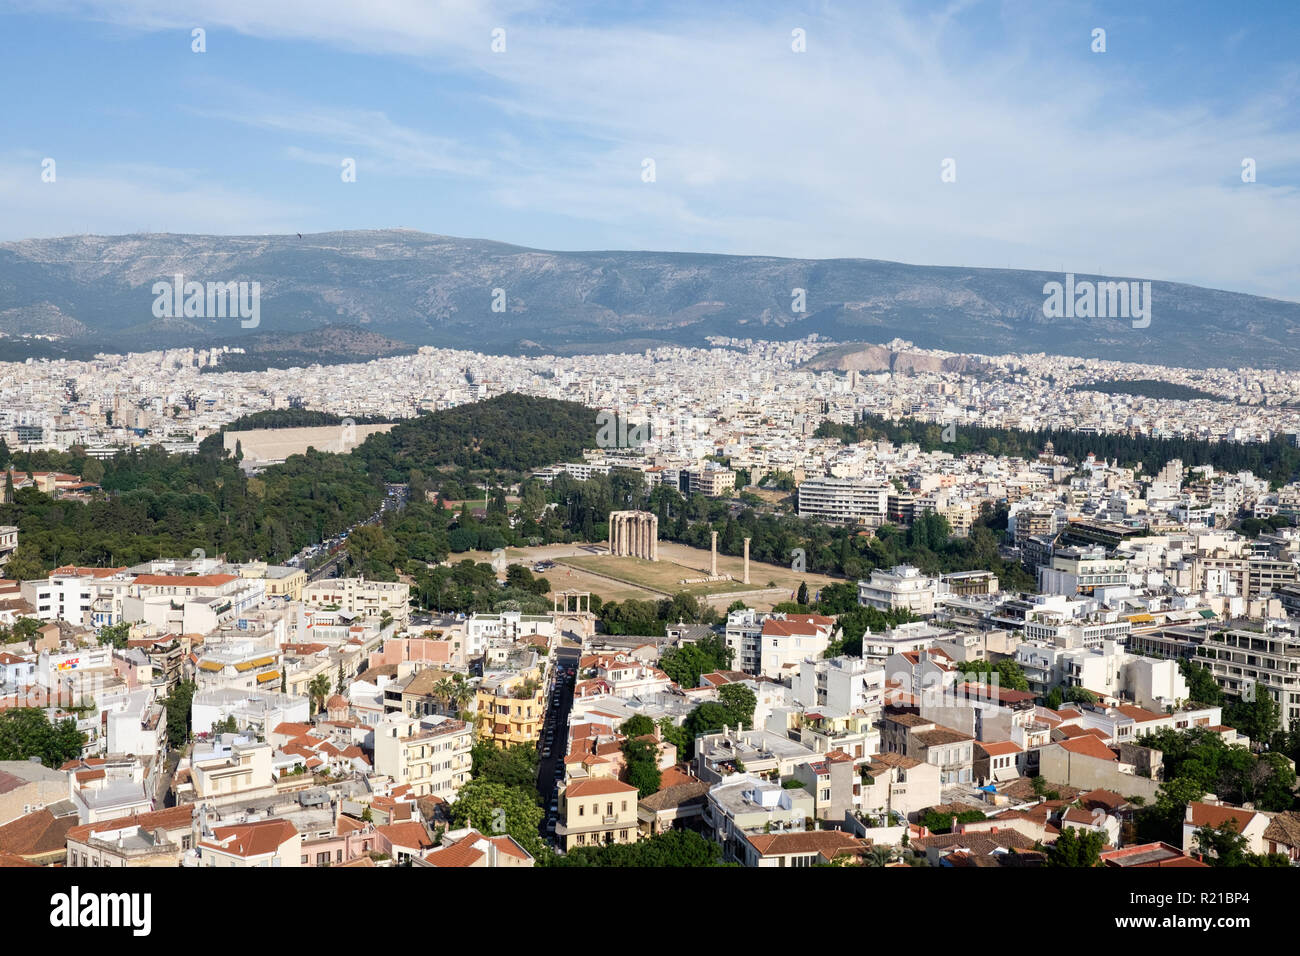 View from the Acropolis of Athens, Greece looking out towards the Temple of Olympian Zeus. - Stock Image